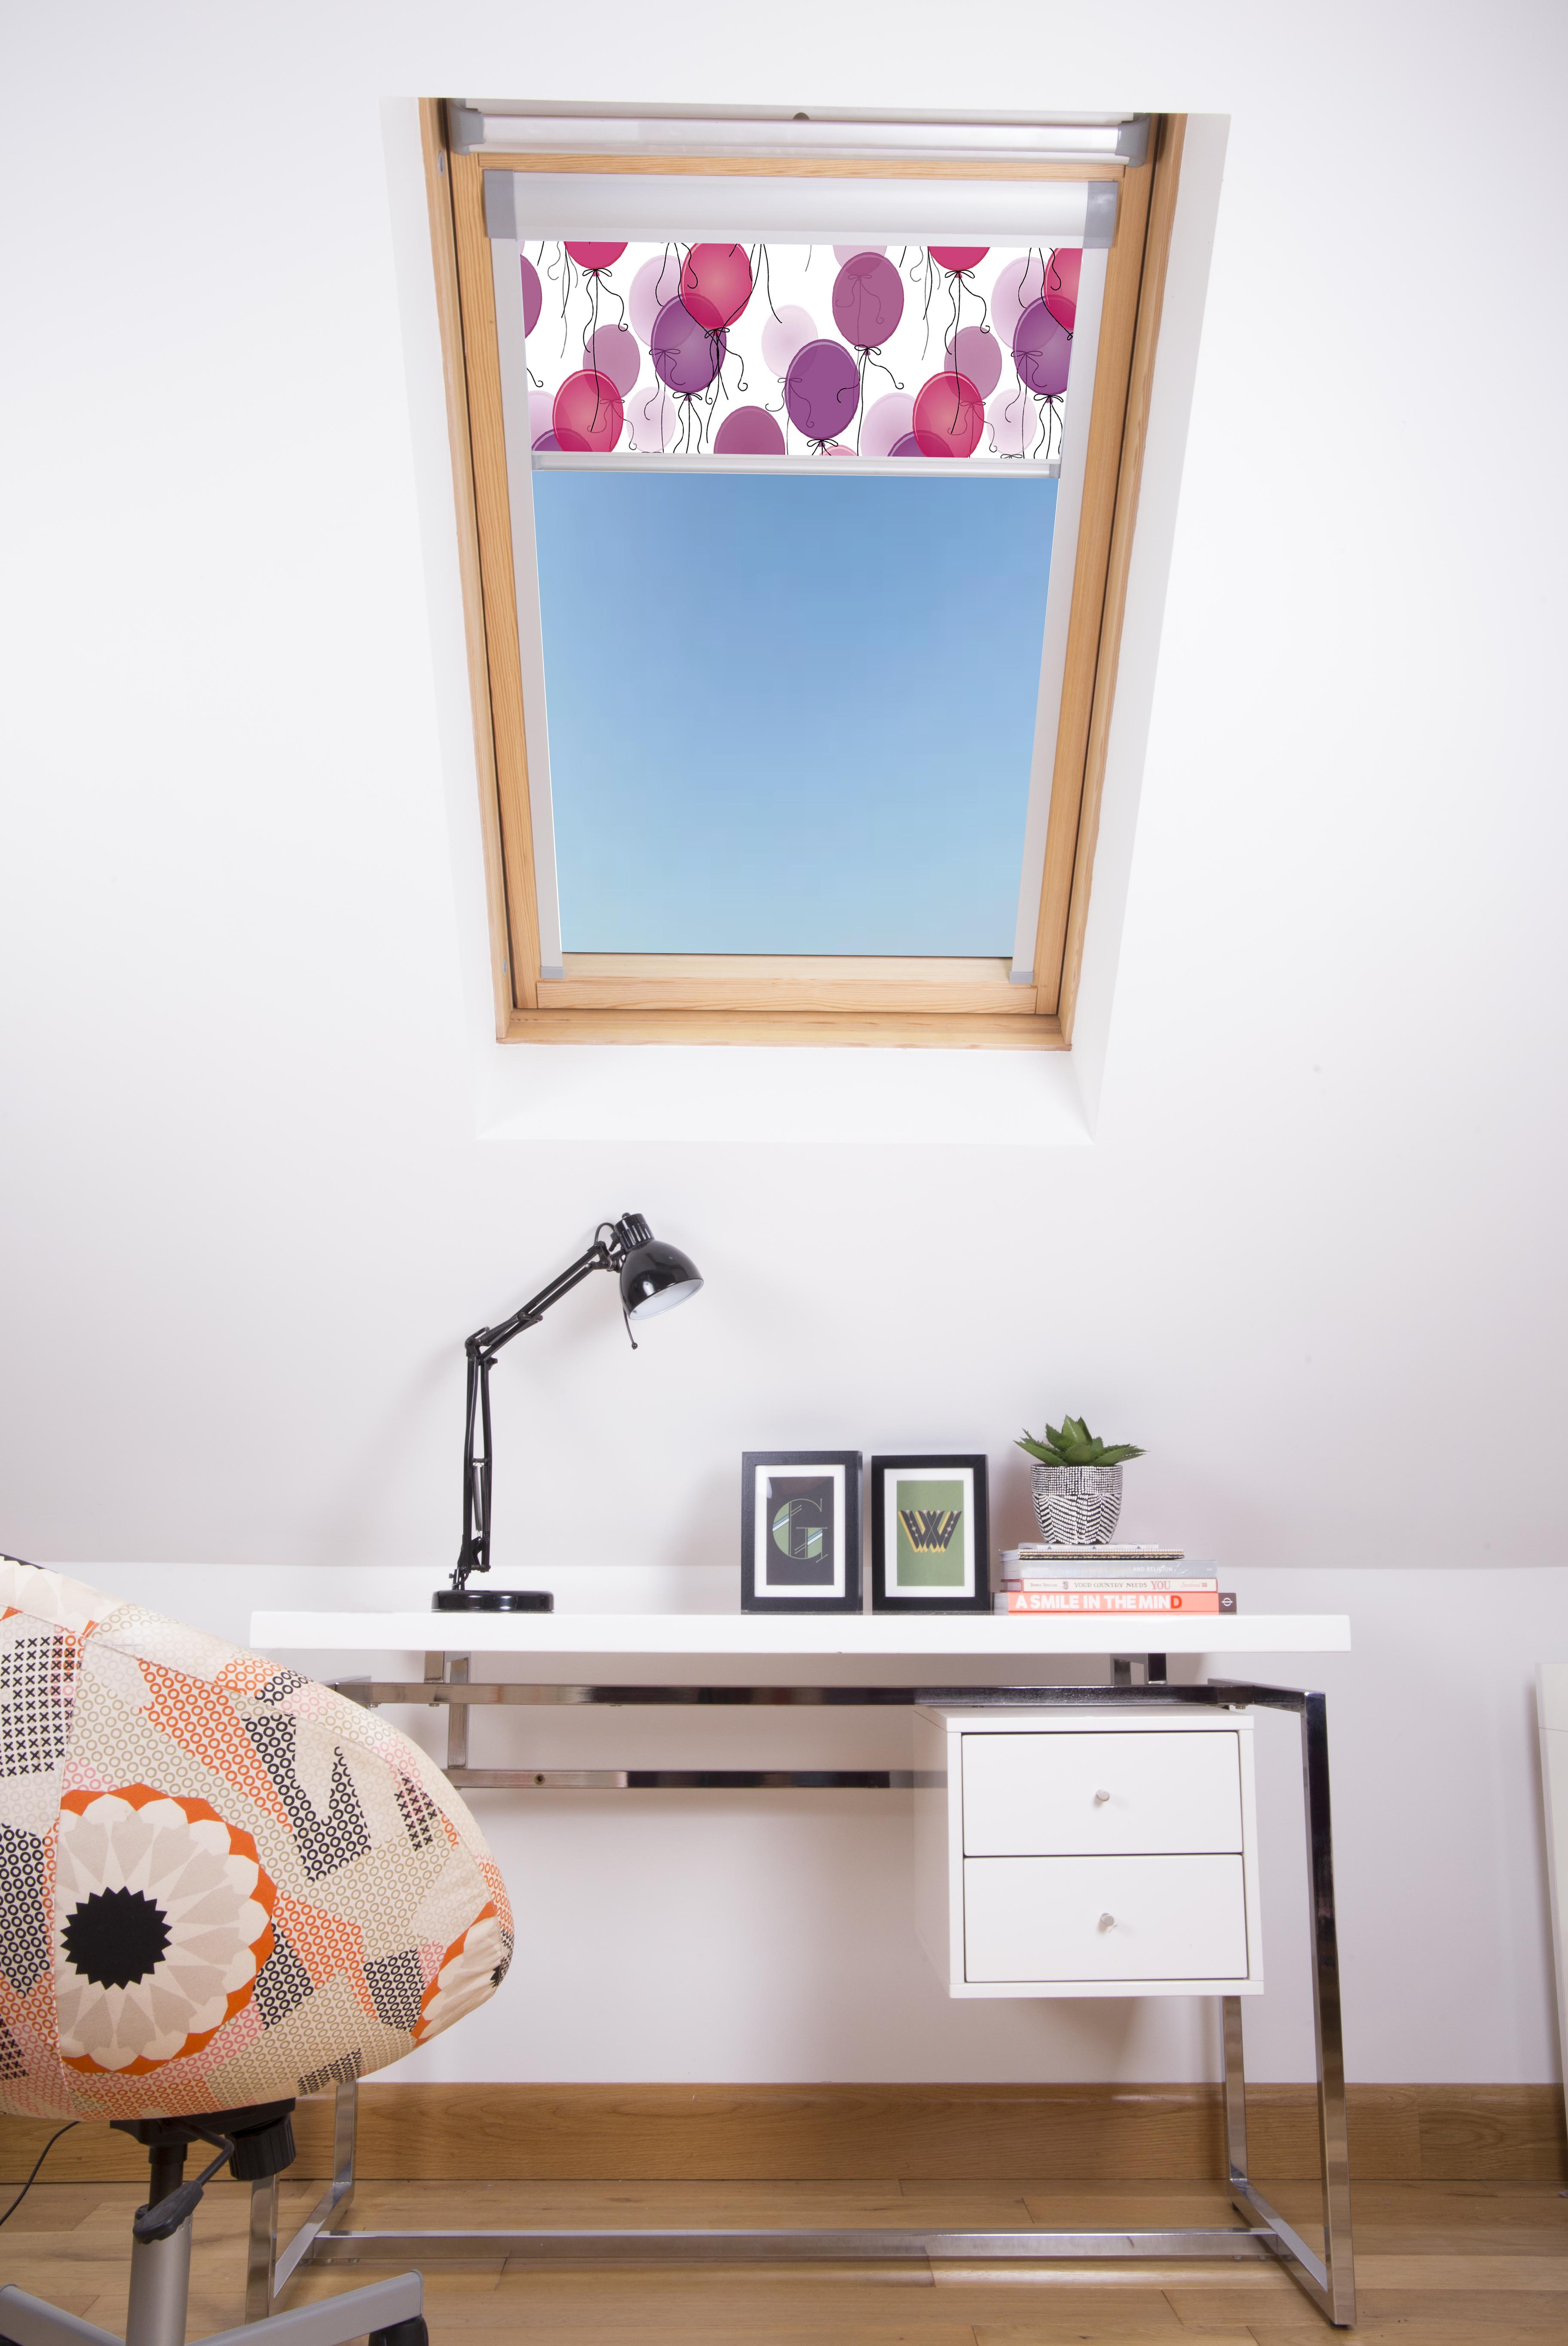 DIGIBB-Pink Balloons skylight blind in an office